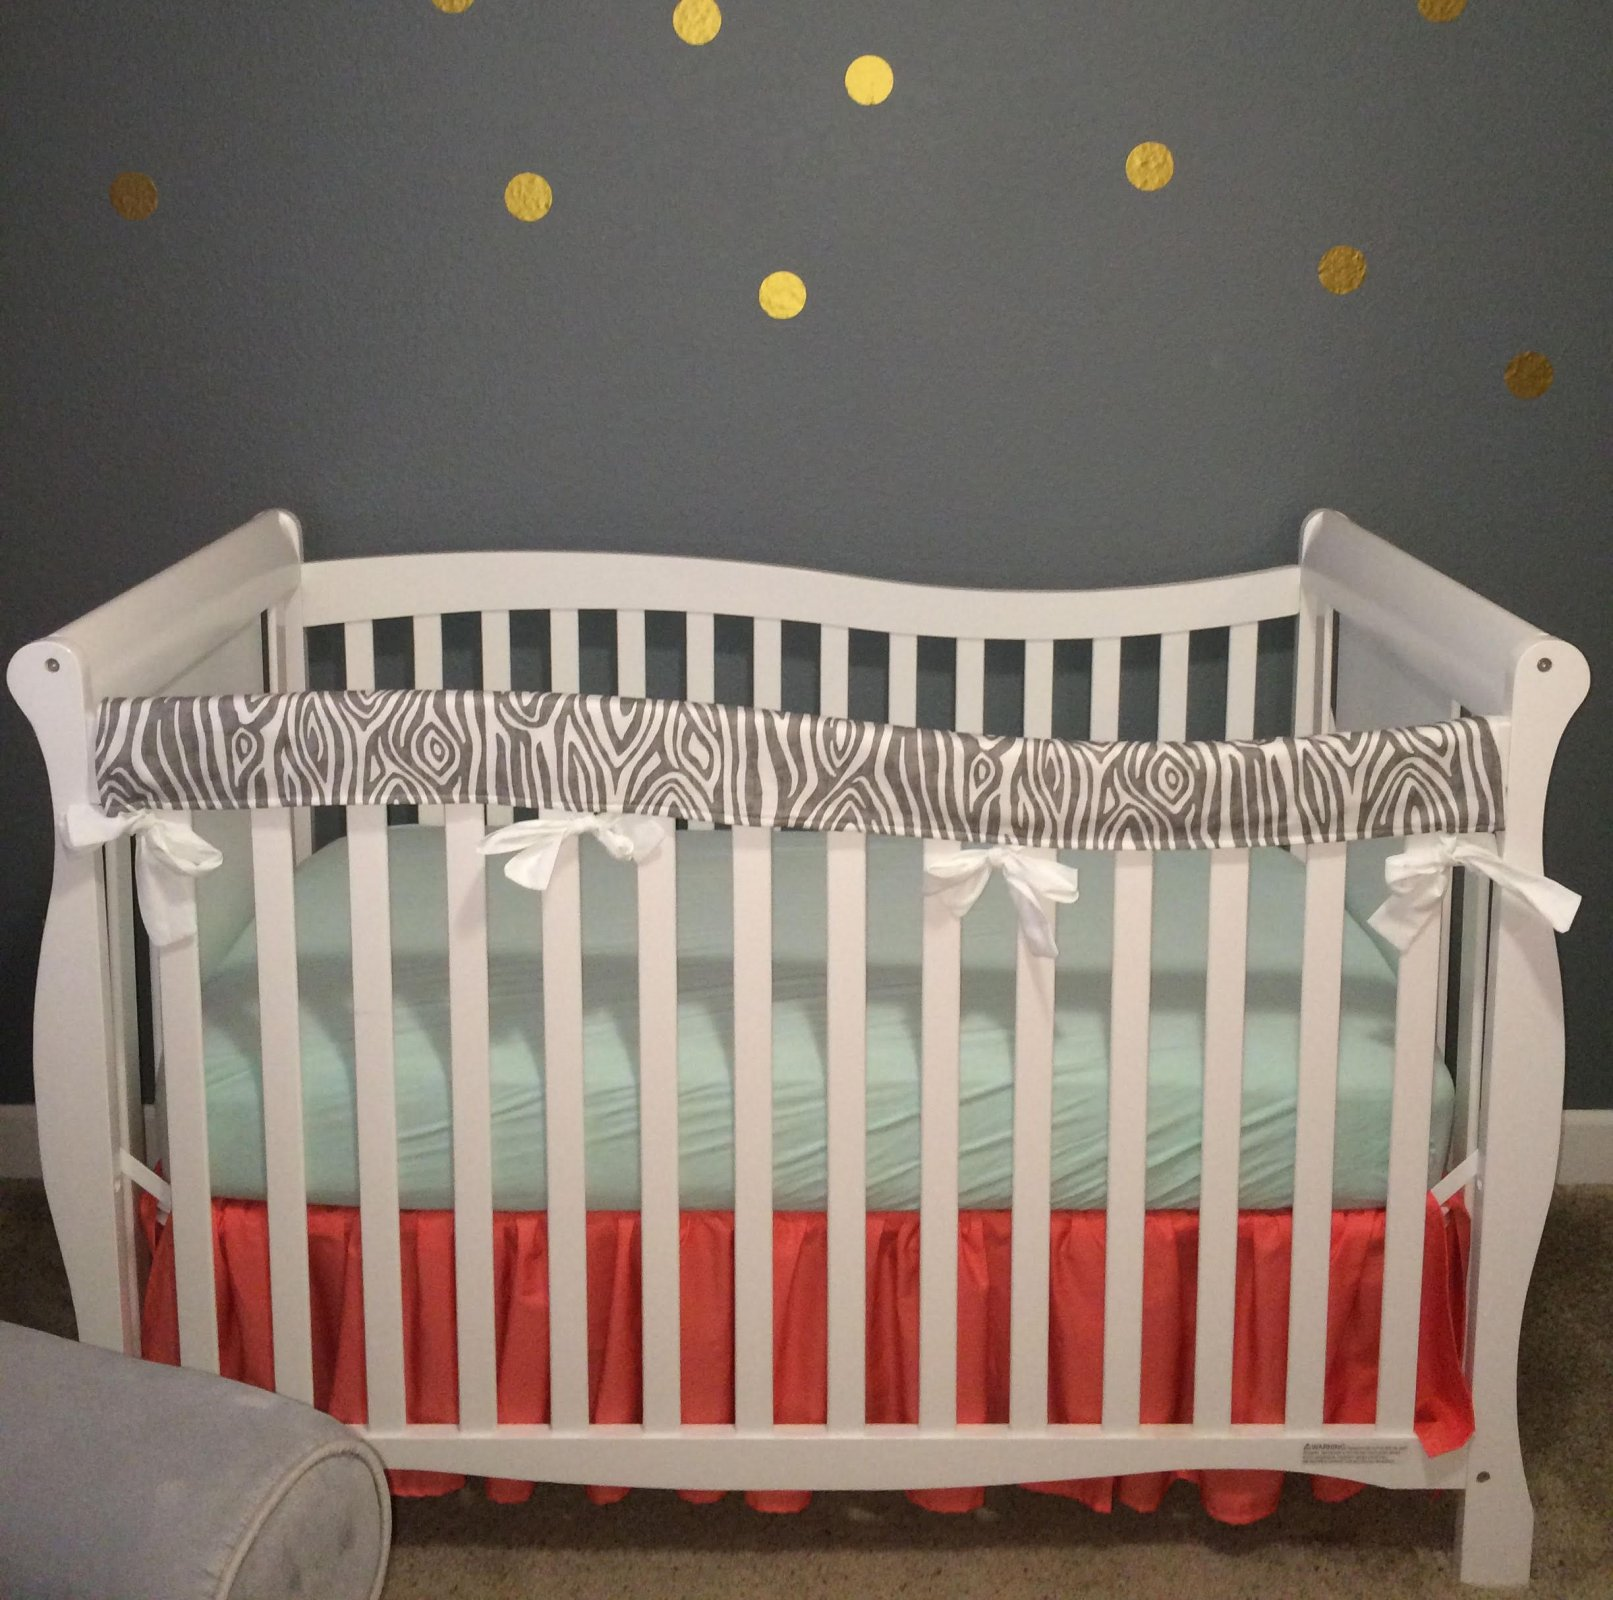 Crib Rail Cover - Long Side